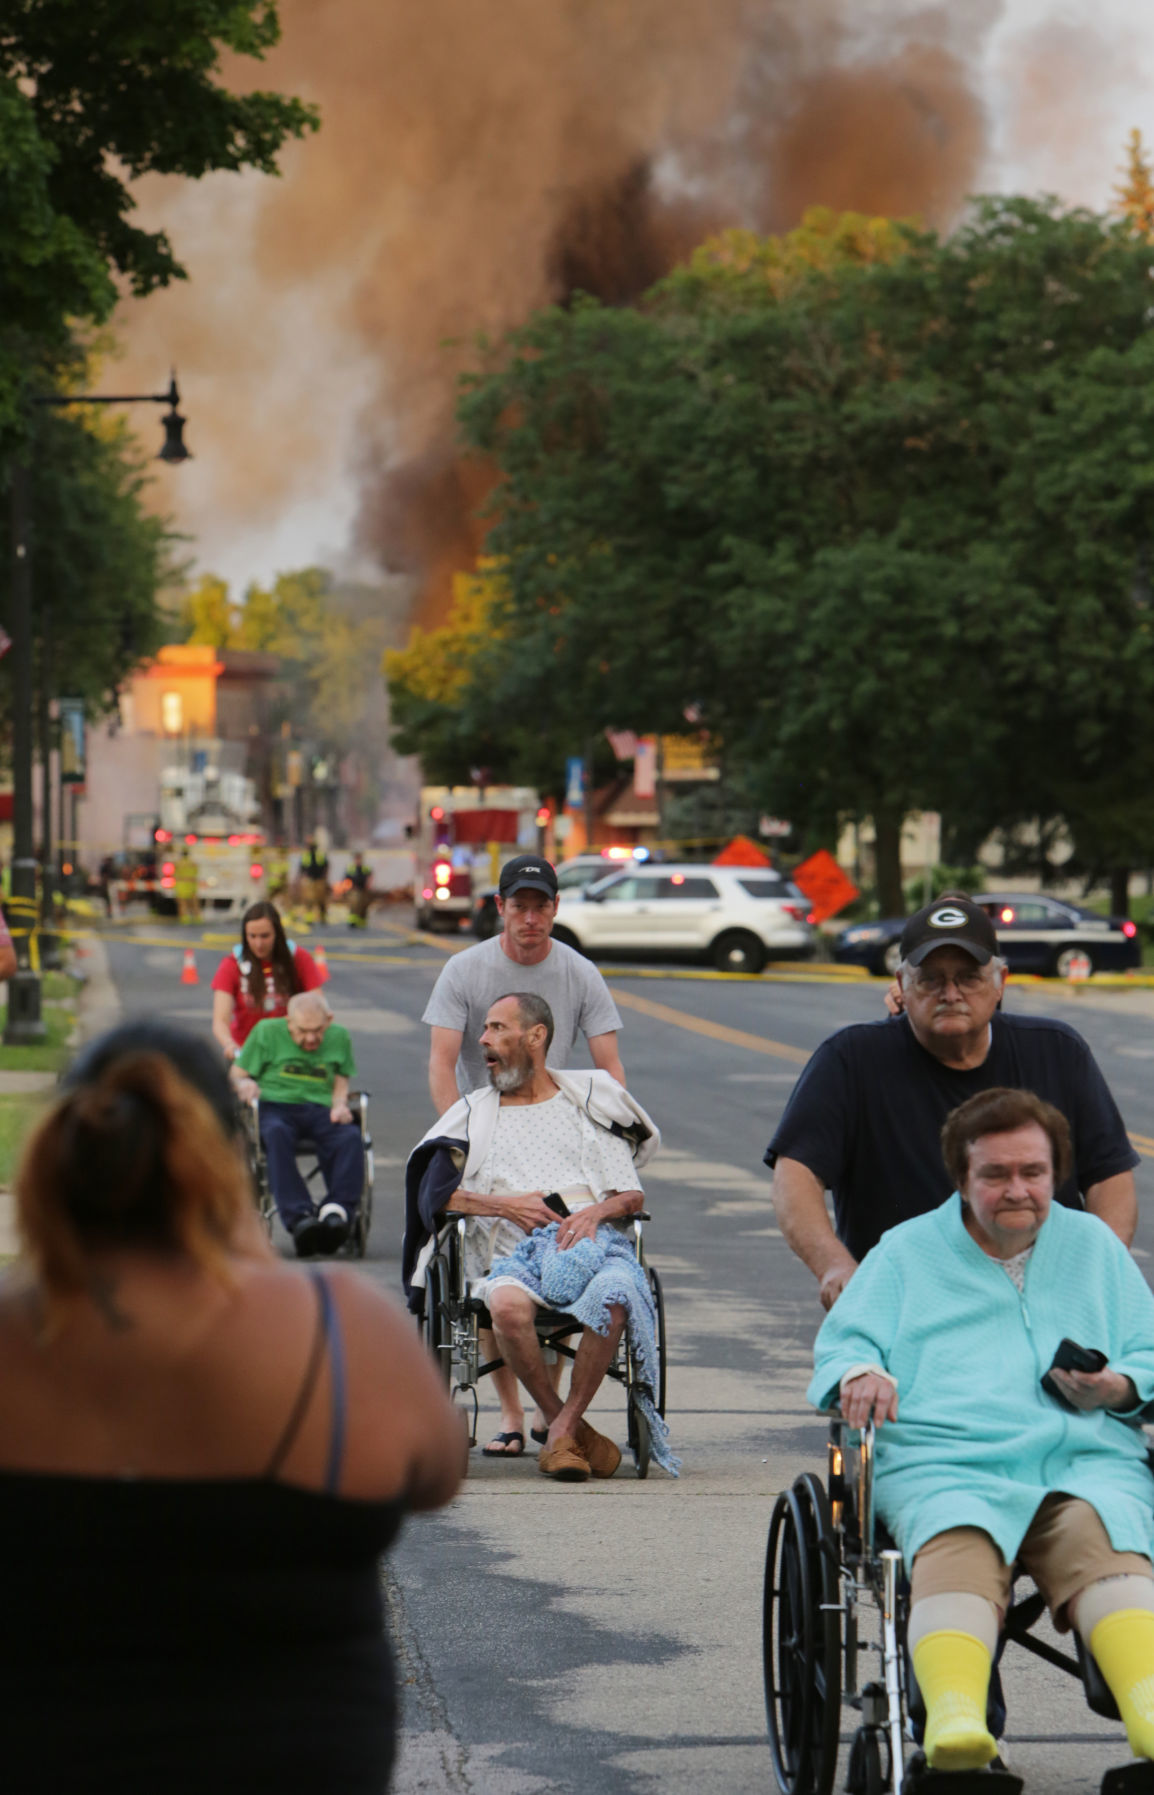 Residents of an assisted living facility evacuated